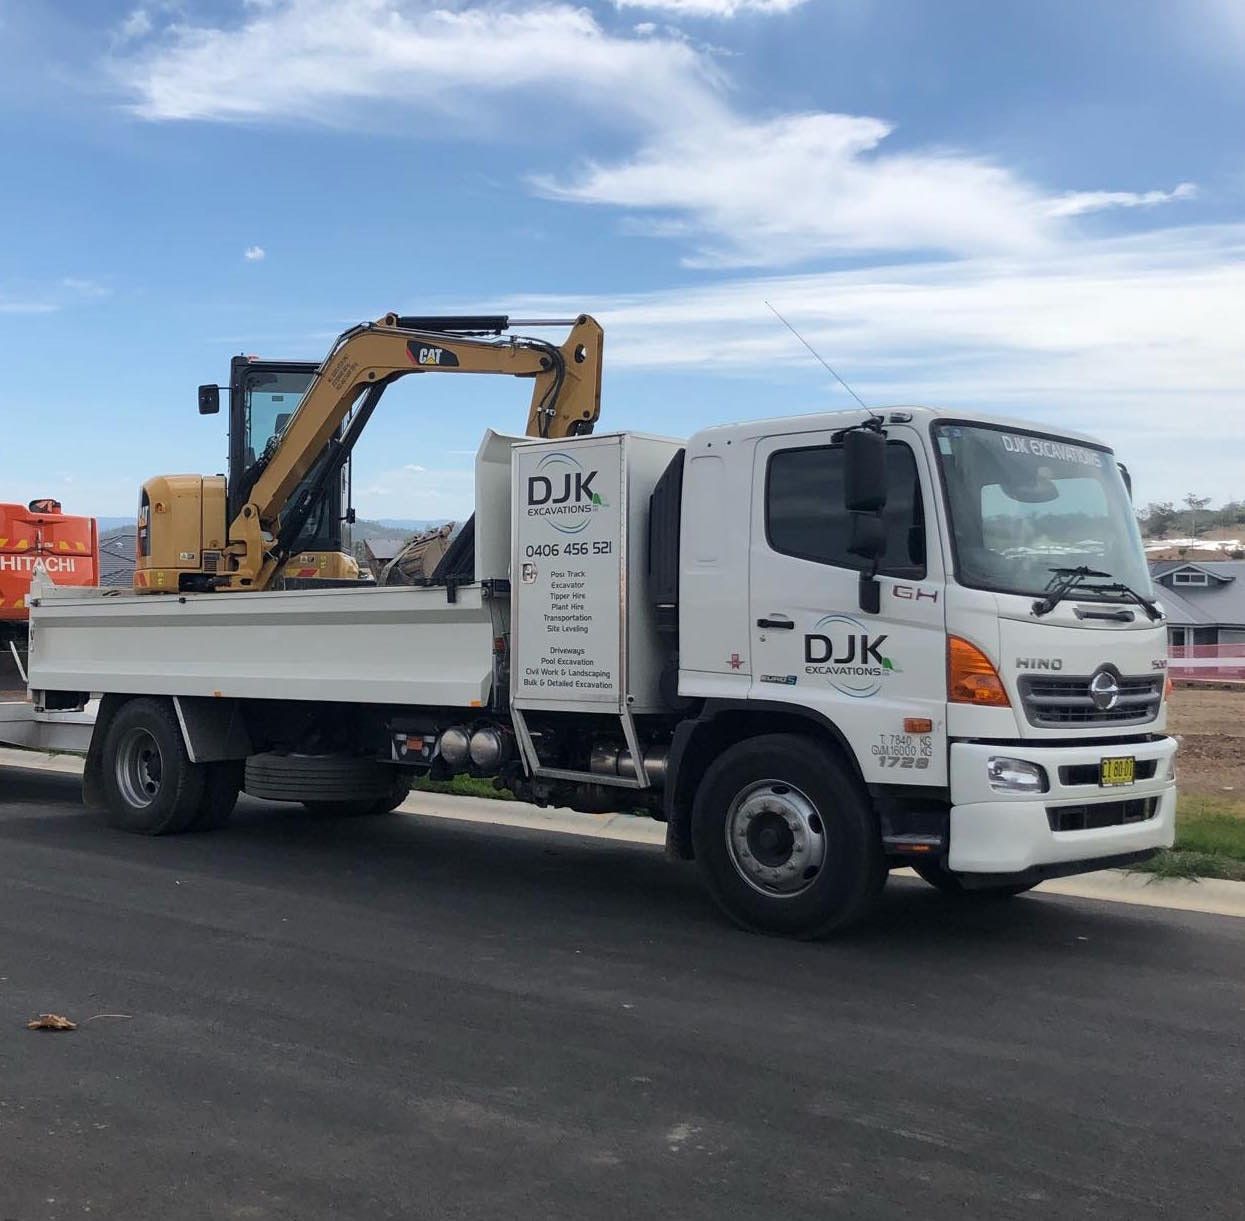 Bogie Drive up to 12t Road Truck for hire - DJK Excavations PTY LTD